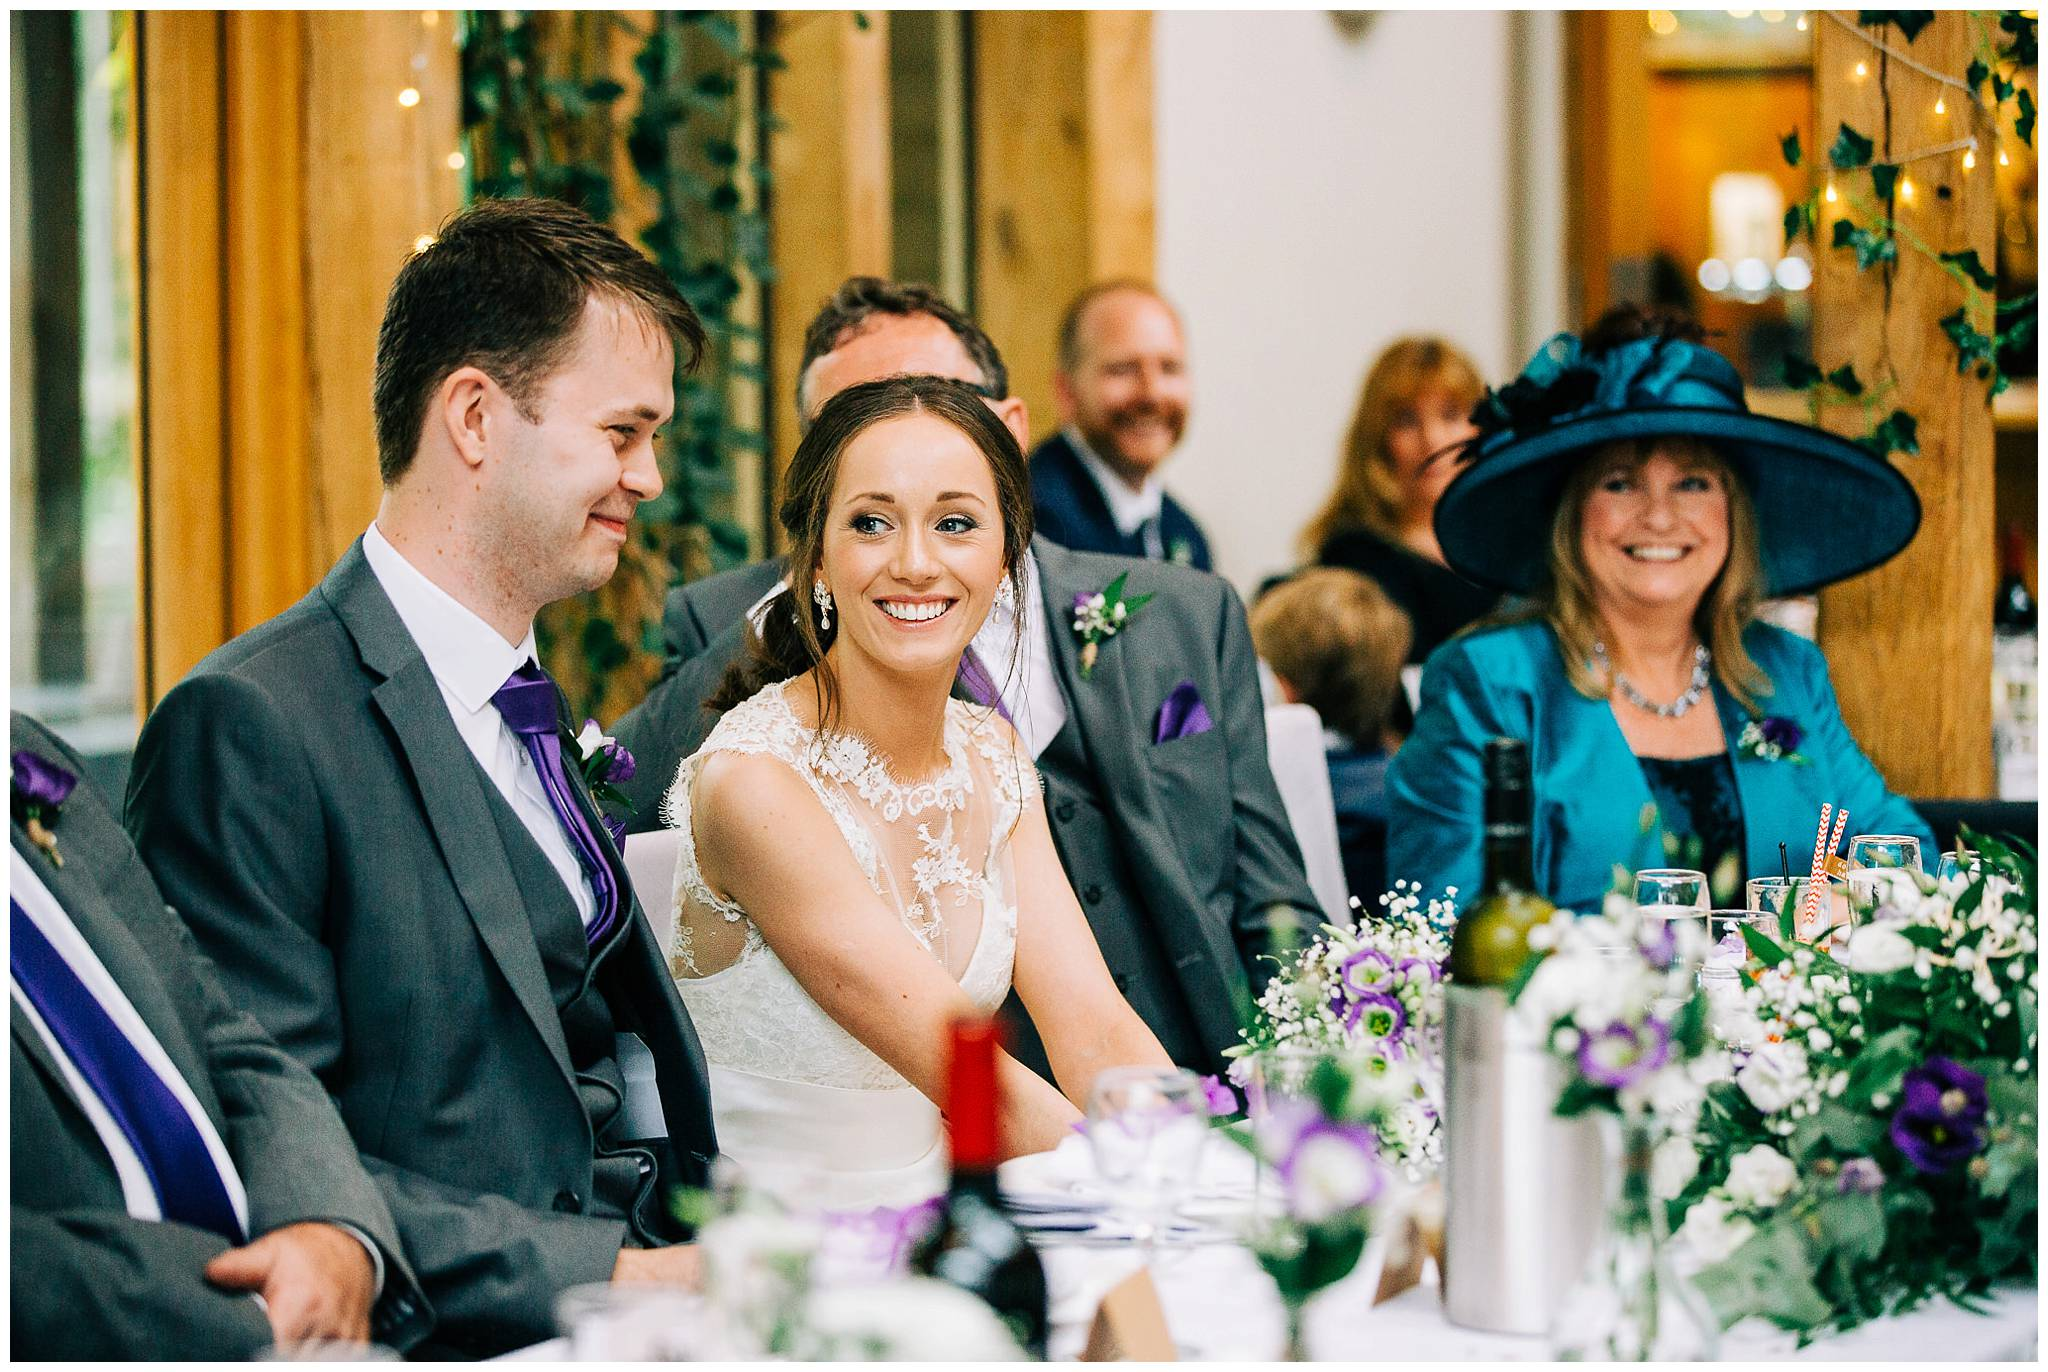 The Oak Tree at Peover - Cheshire Wedding Photographer-105.jpg